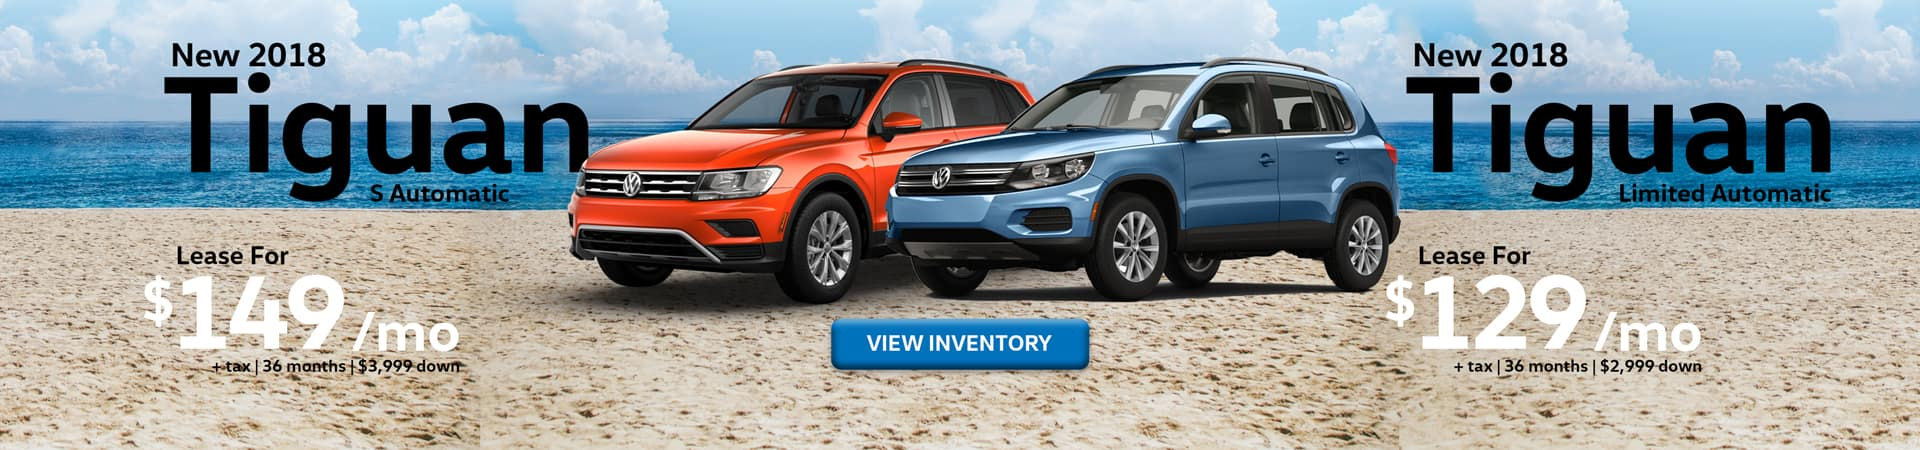 Lease special offers on 2018 Tiguan models at Timmons Long Beach